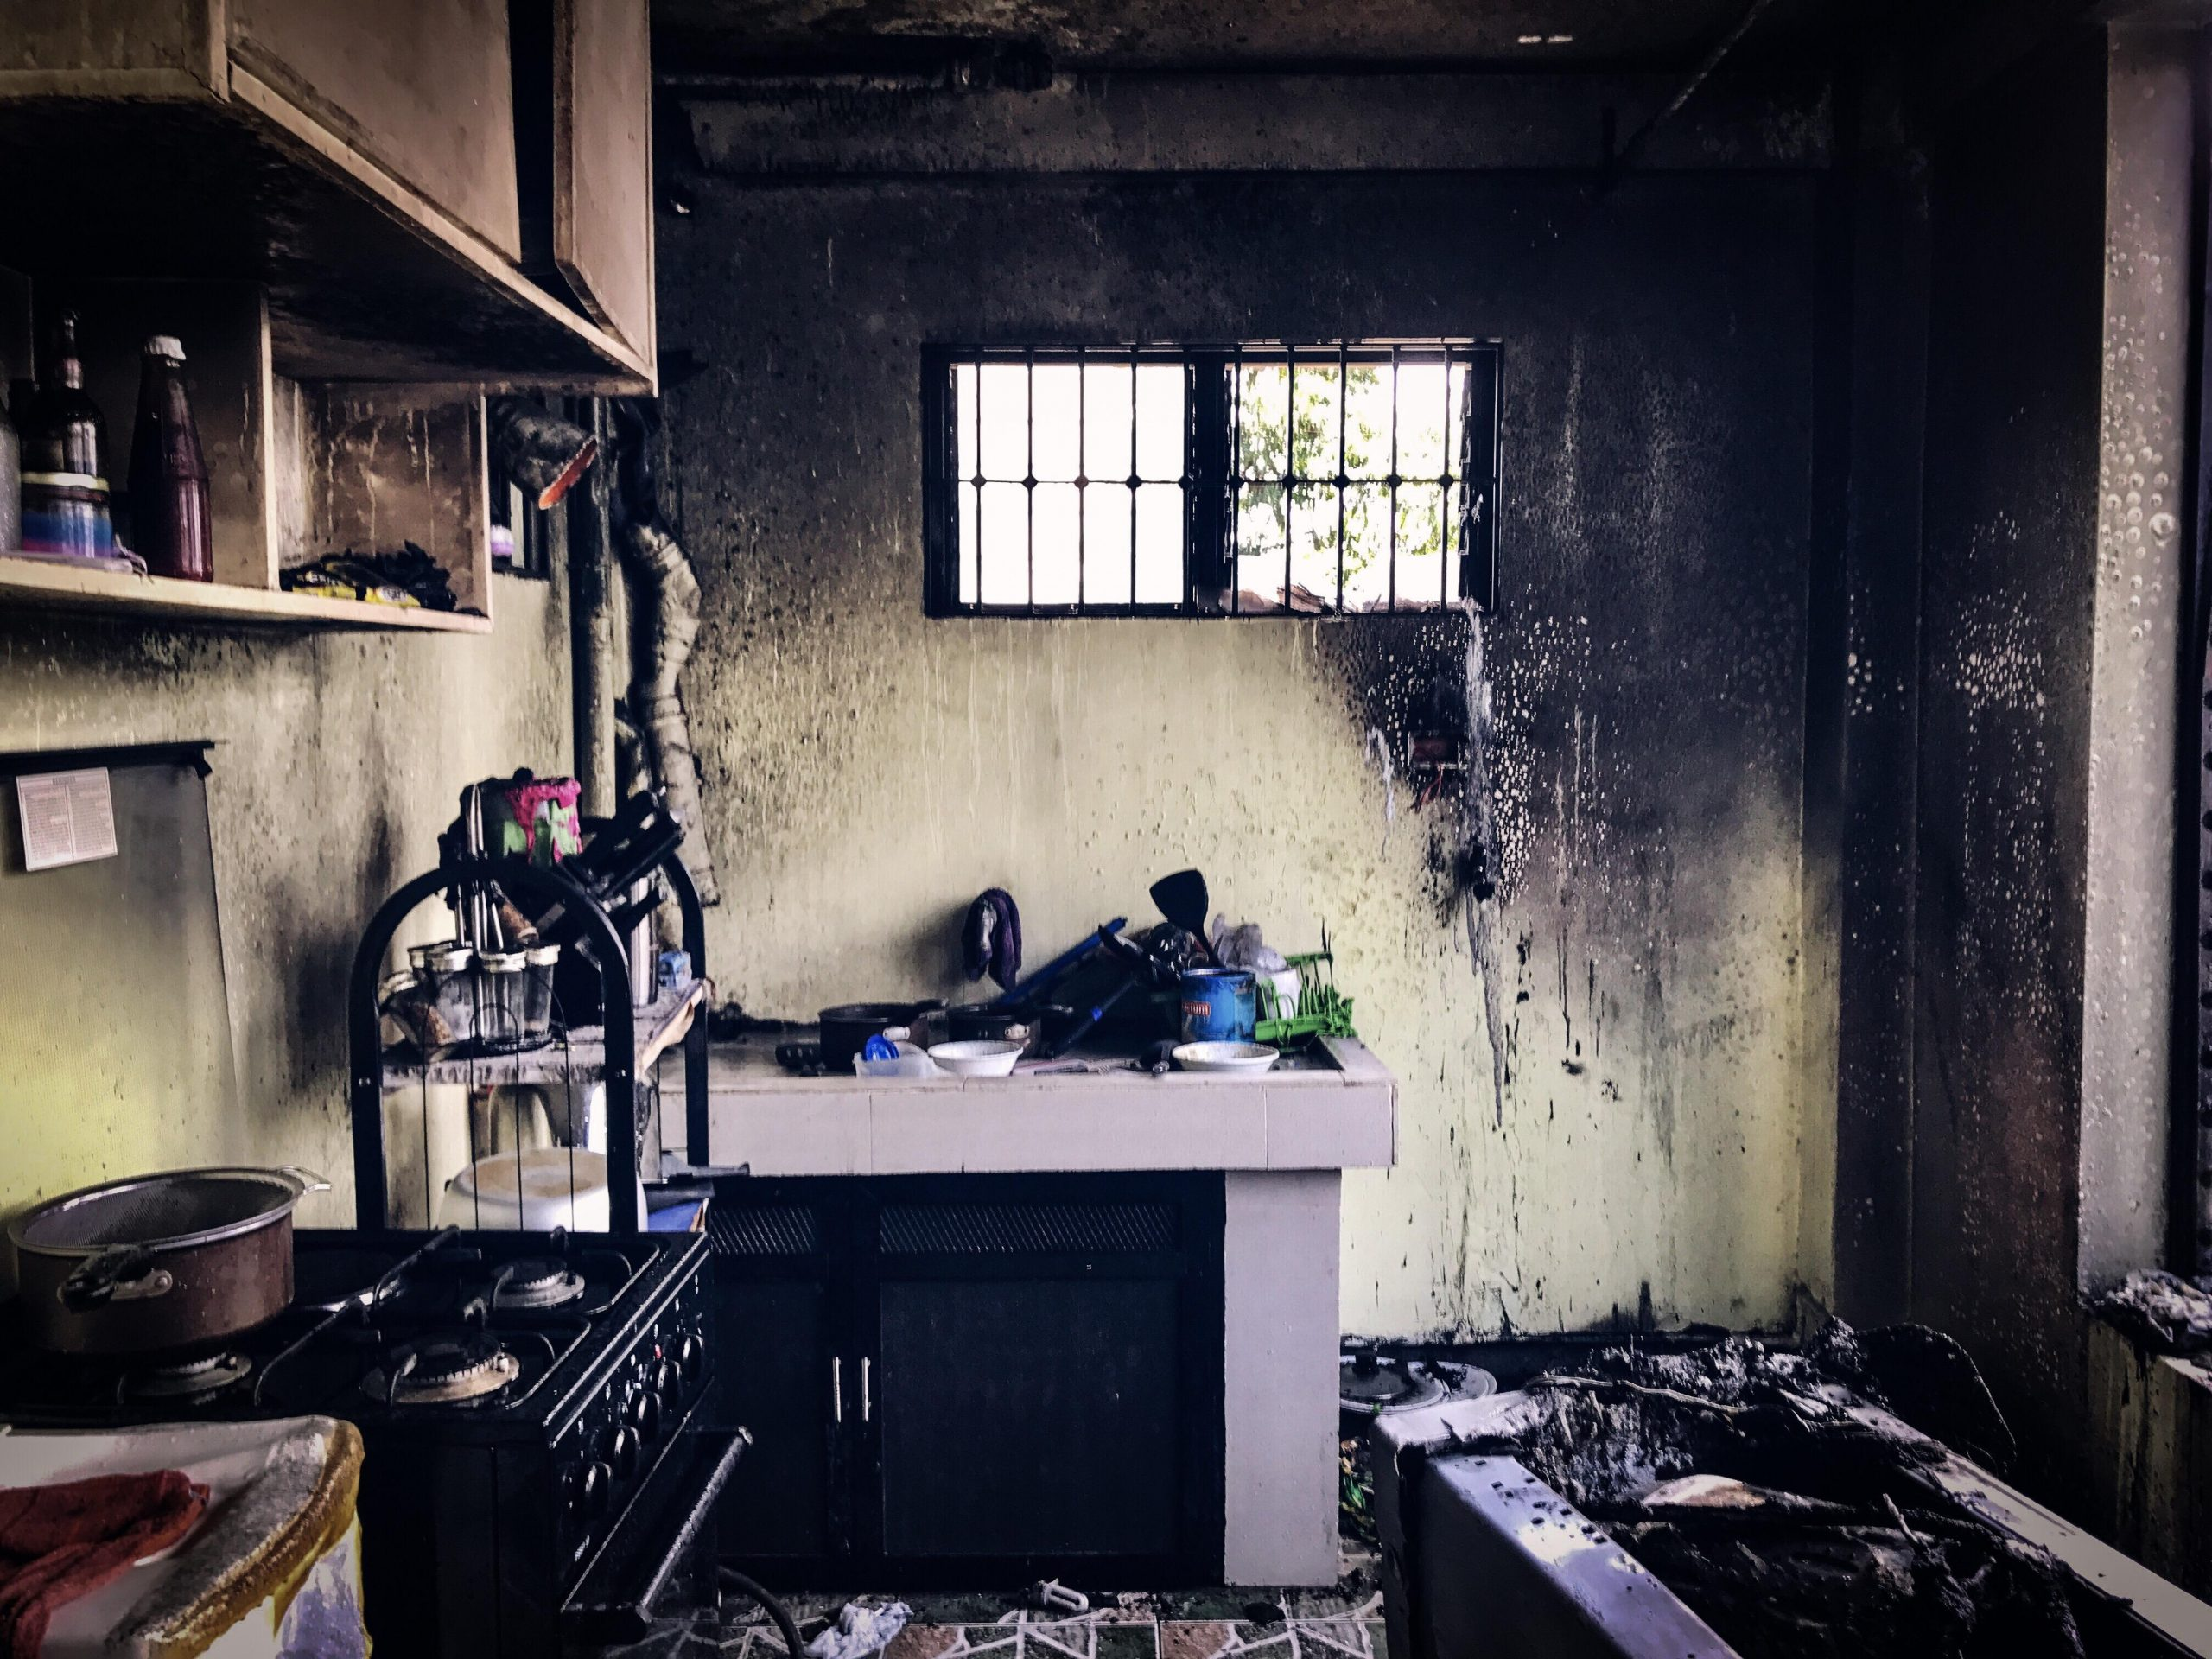 kitchen walls covered in soot after a winter fire